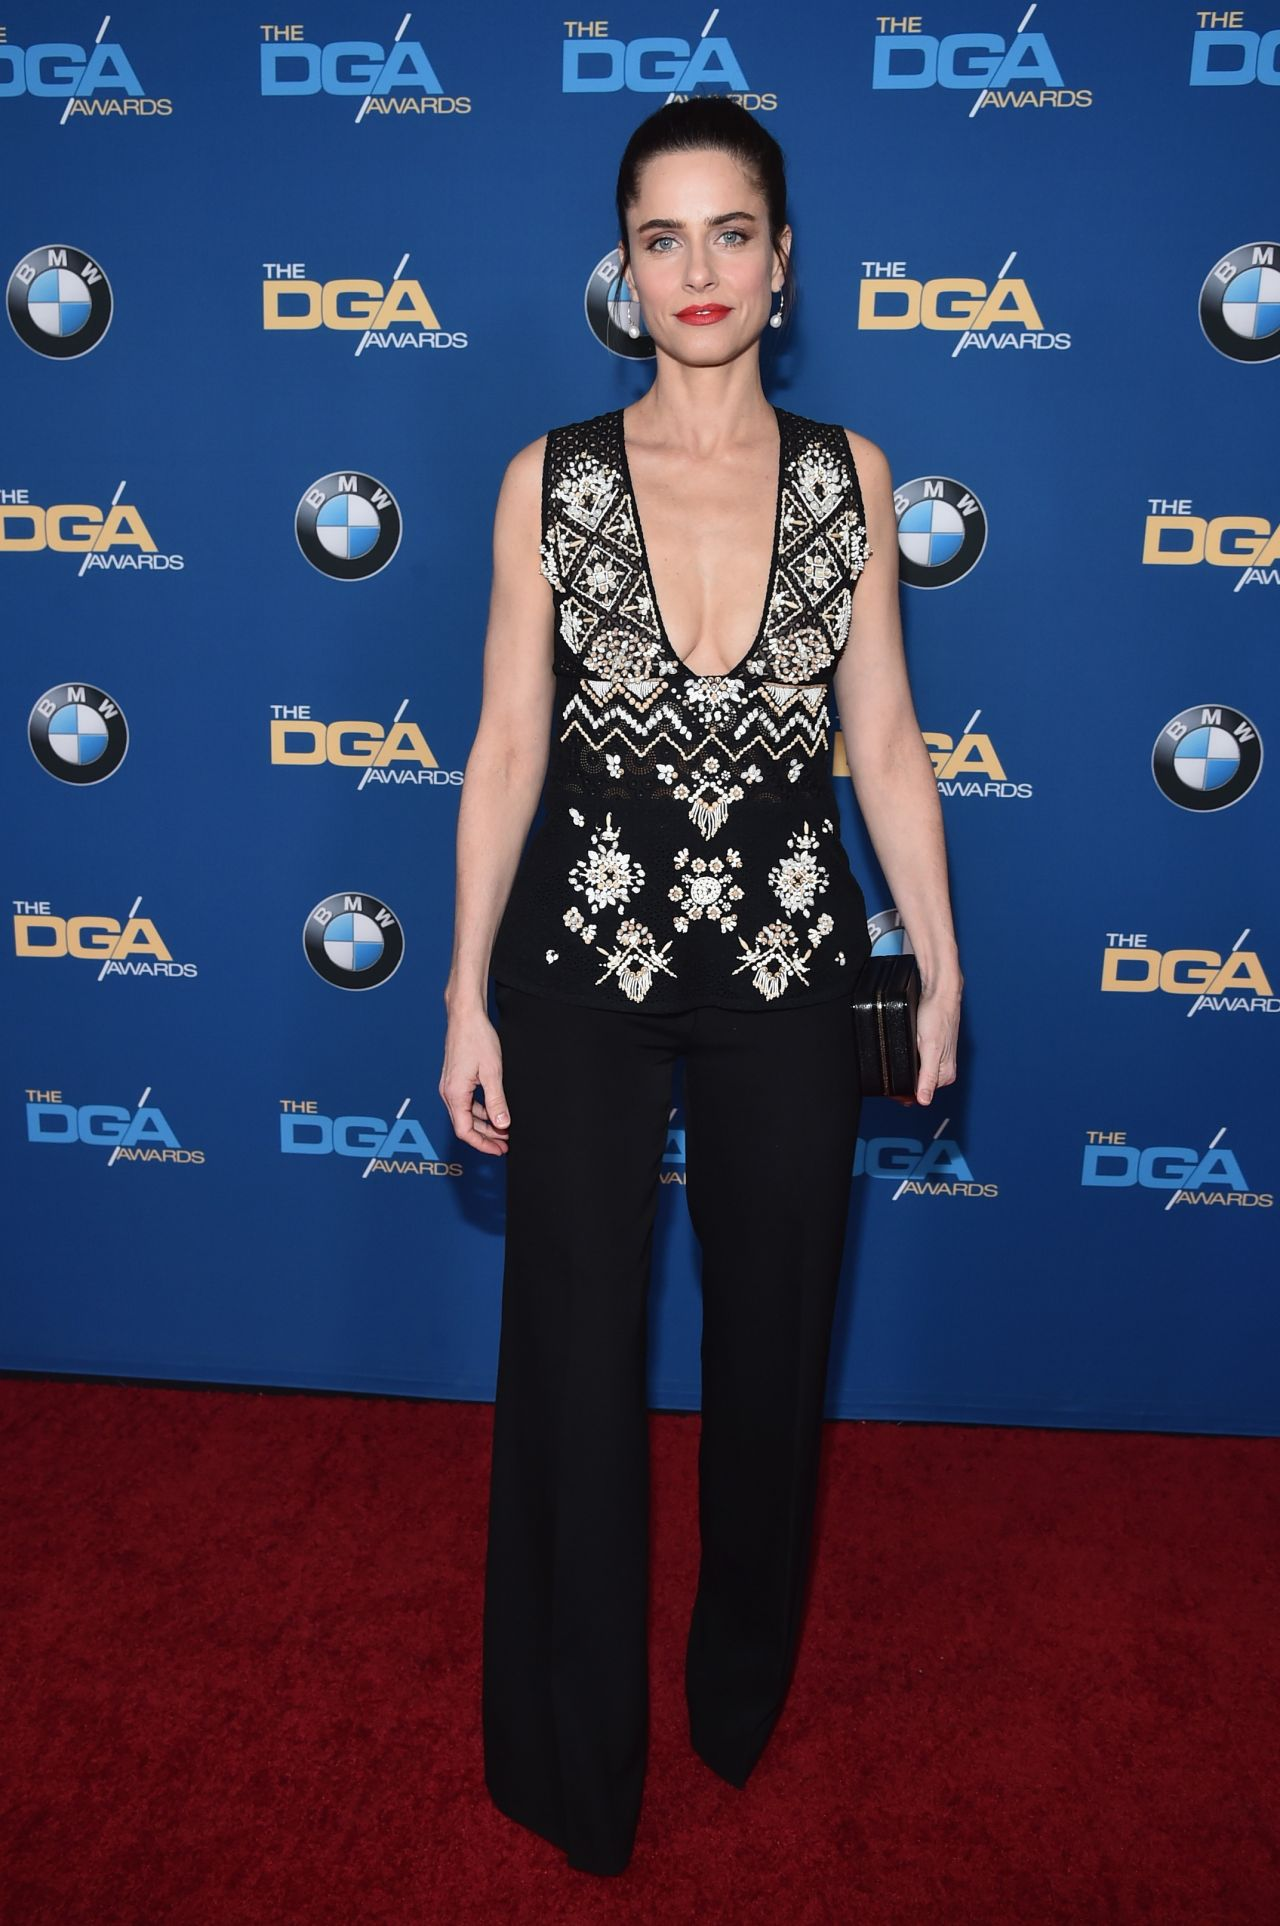 amanda-peet-directors-guild-of-america-awards-2016-in-los-angeles-4